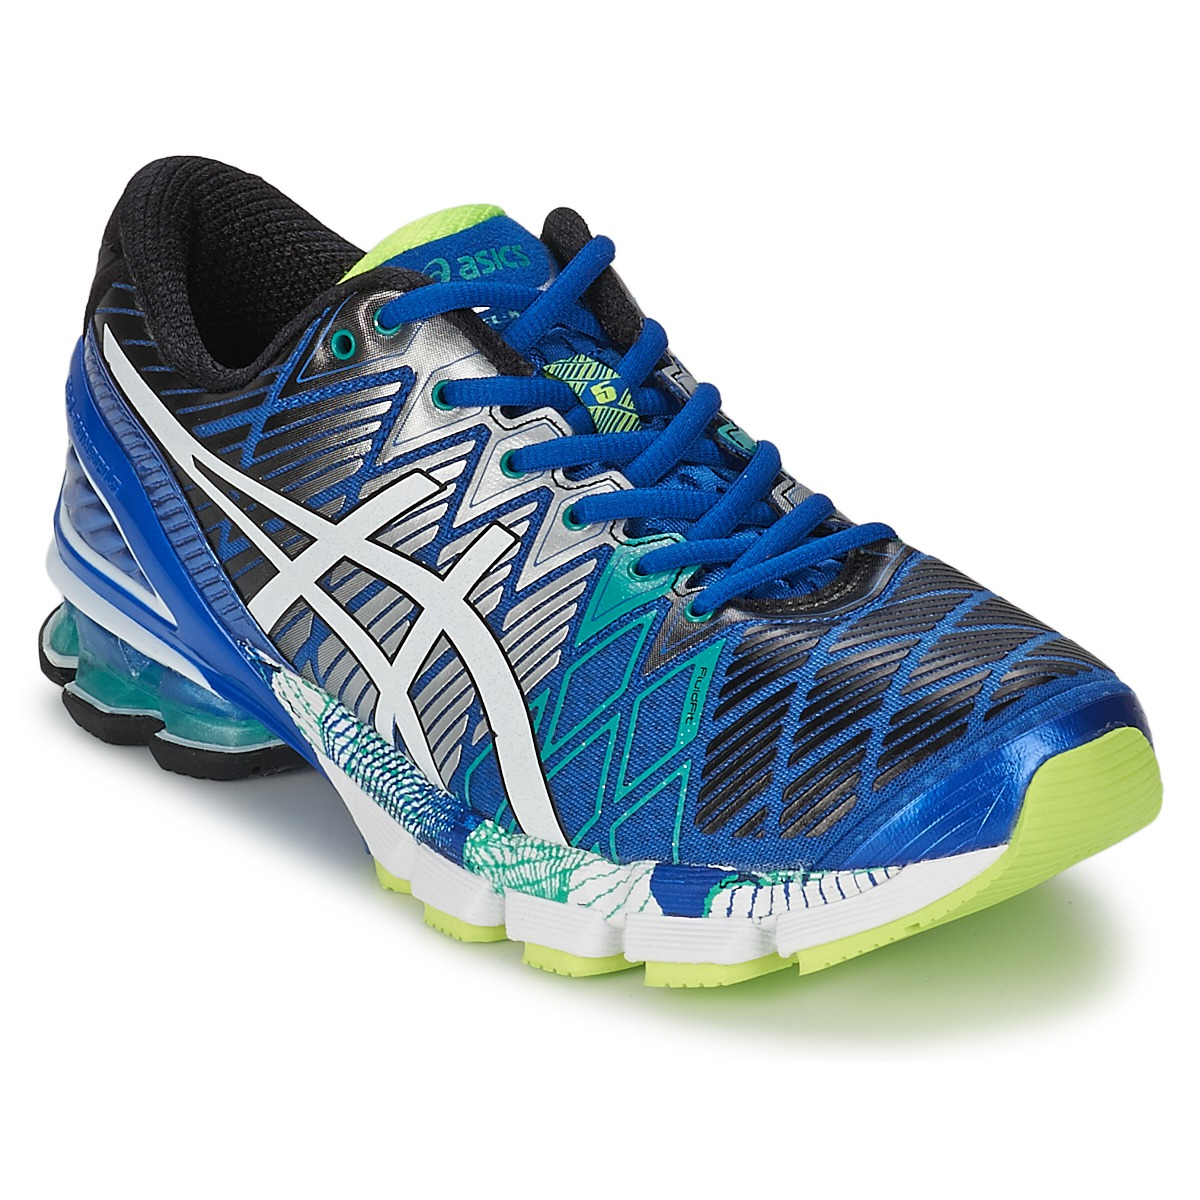 Running-shoes Asics GEL-KINSEI 5 Blue / White / Green